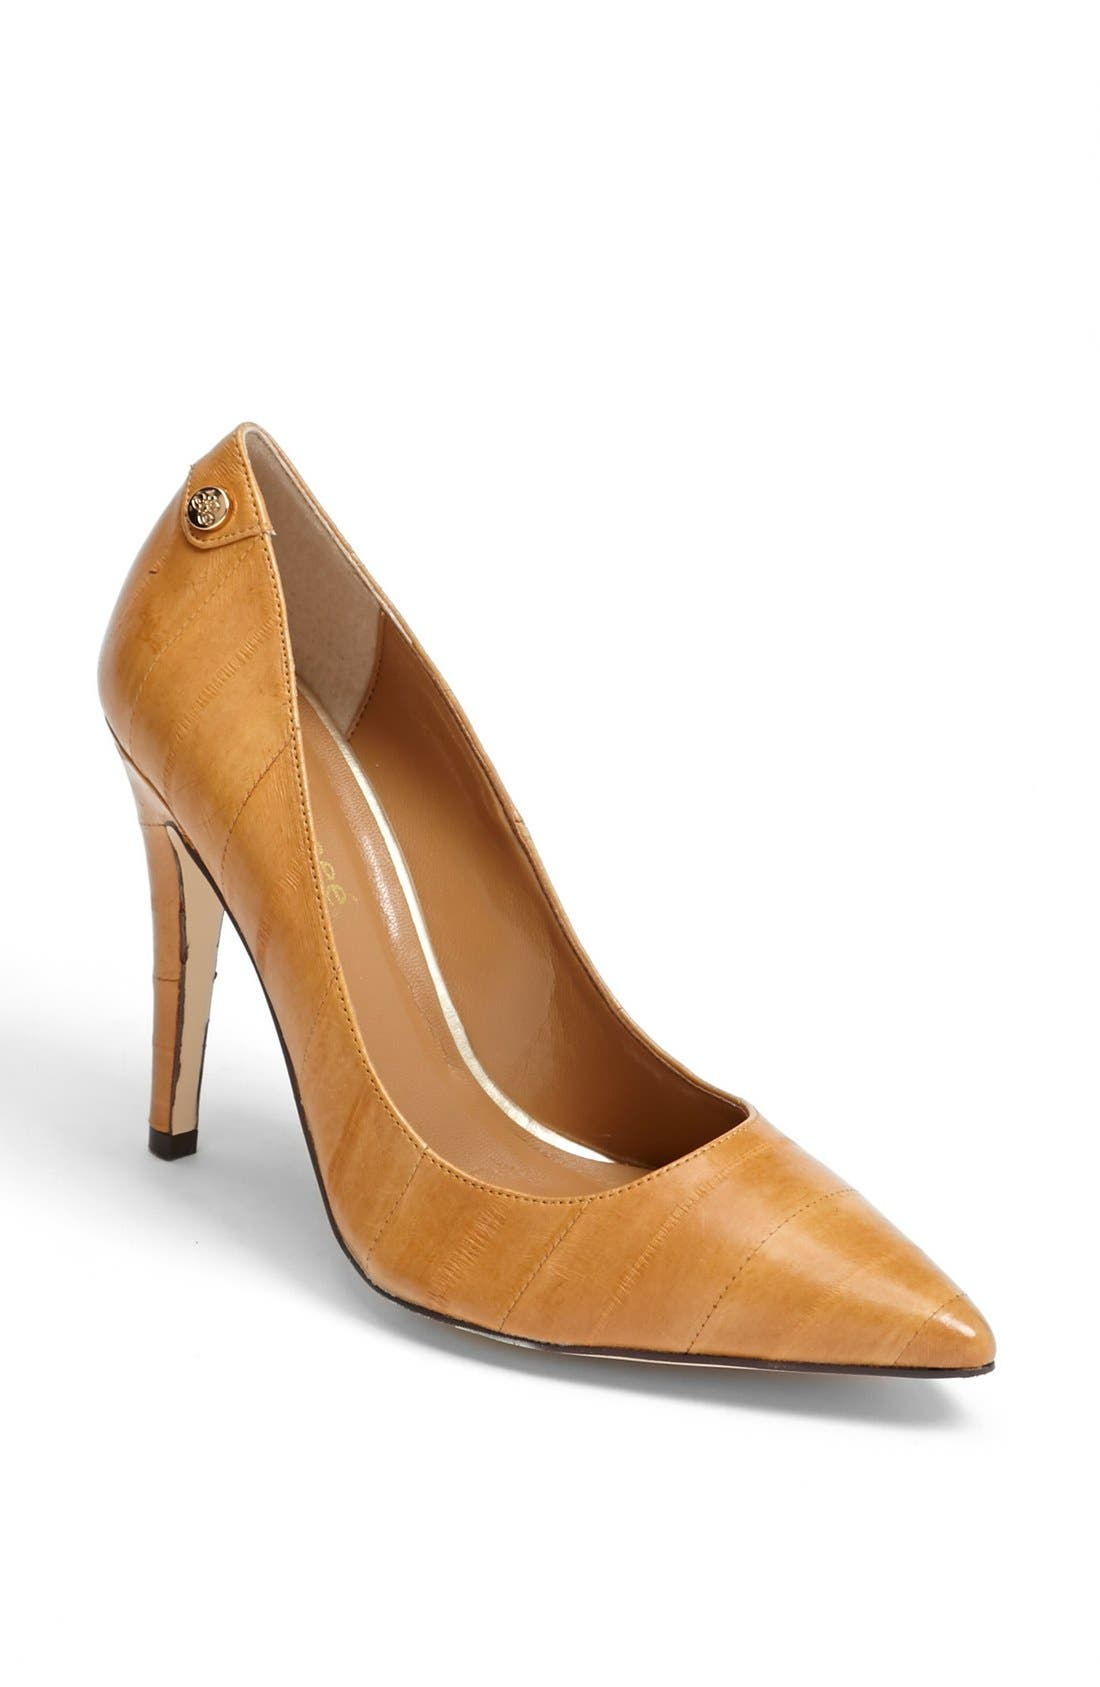 Alternate Image 1 Selected - J. Reneé 'Bezel' Eel Skin Pump